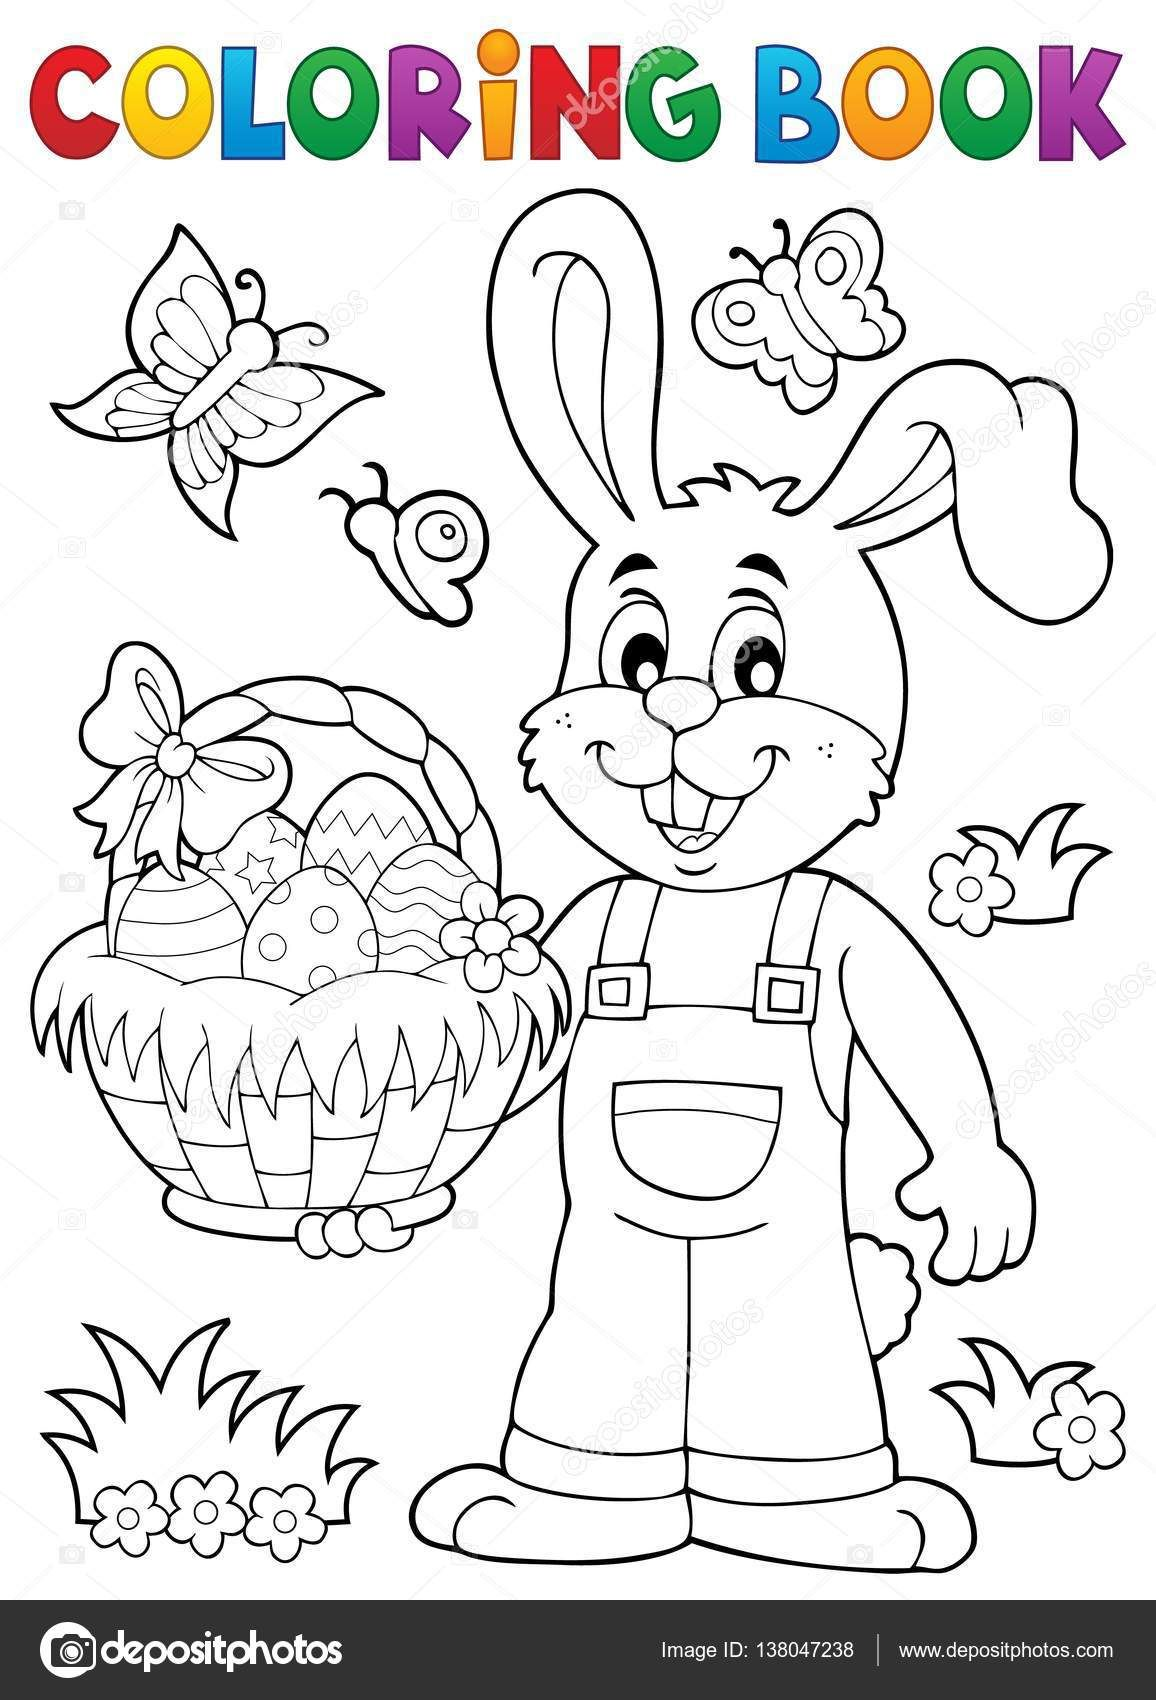 Depositphotos 138047238 Stock Illustration Coloring Book Easter Rabbit Theme Jpg 1156 1700 Easter Coloring Book Coloring Books Easter Coloring Pages Printable